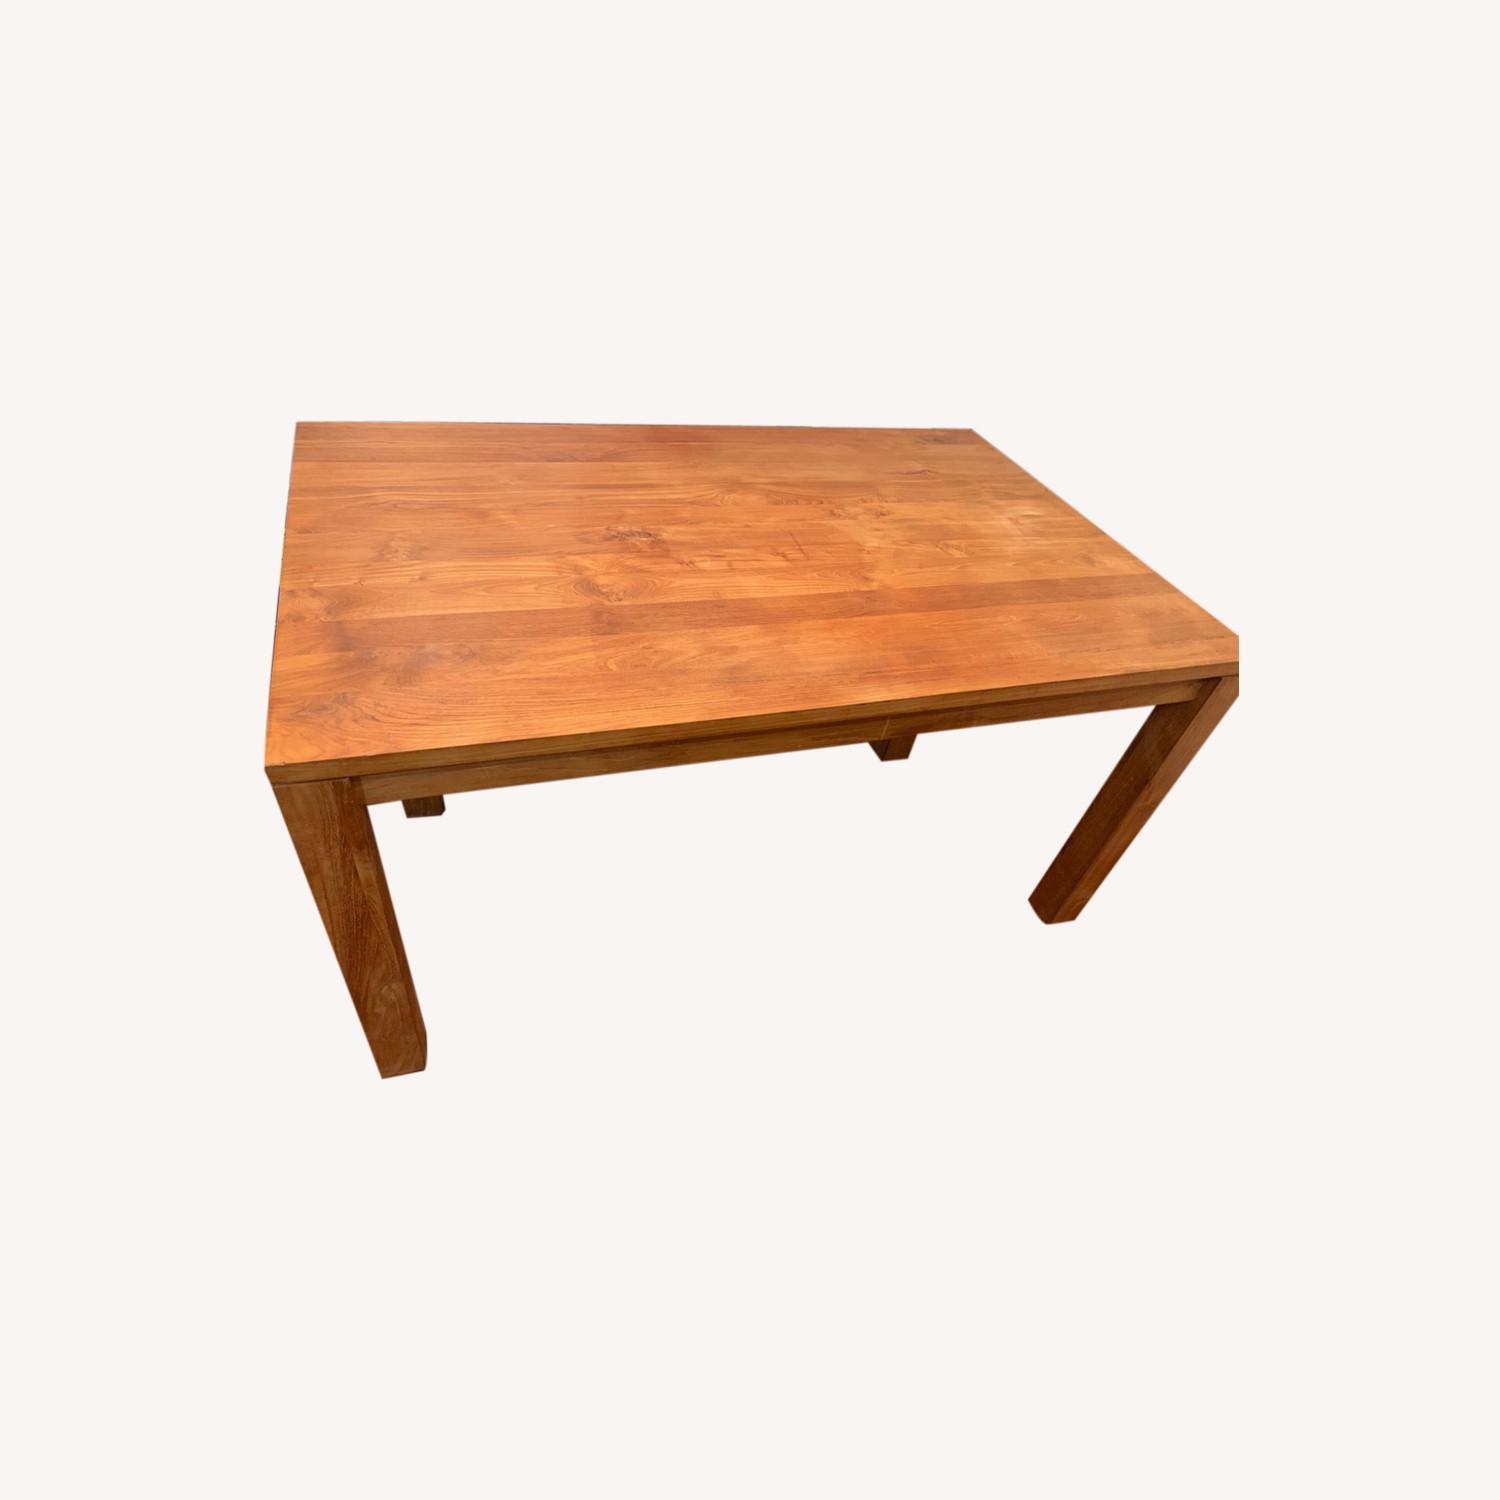 Crate & Barrel Solid Wood Table - image-0